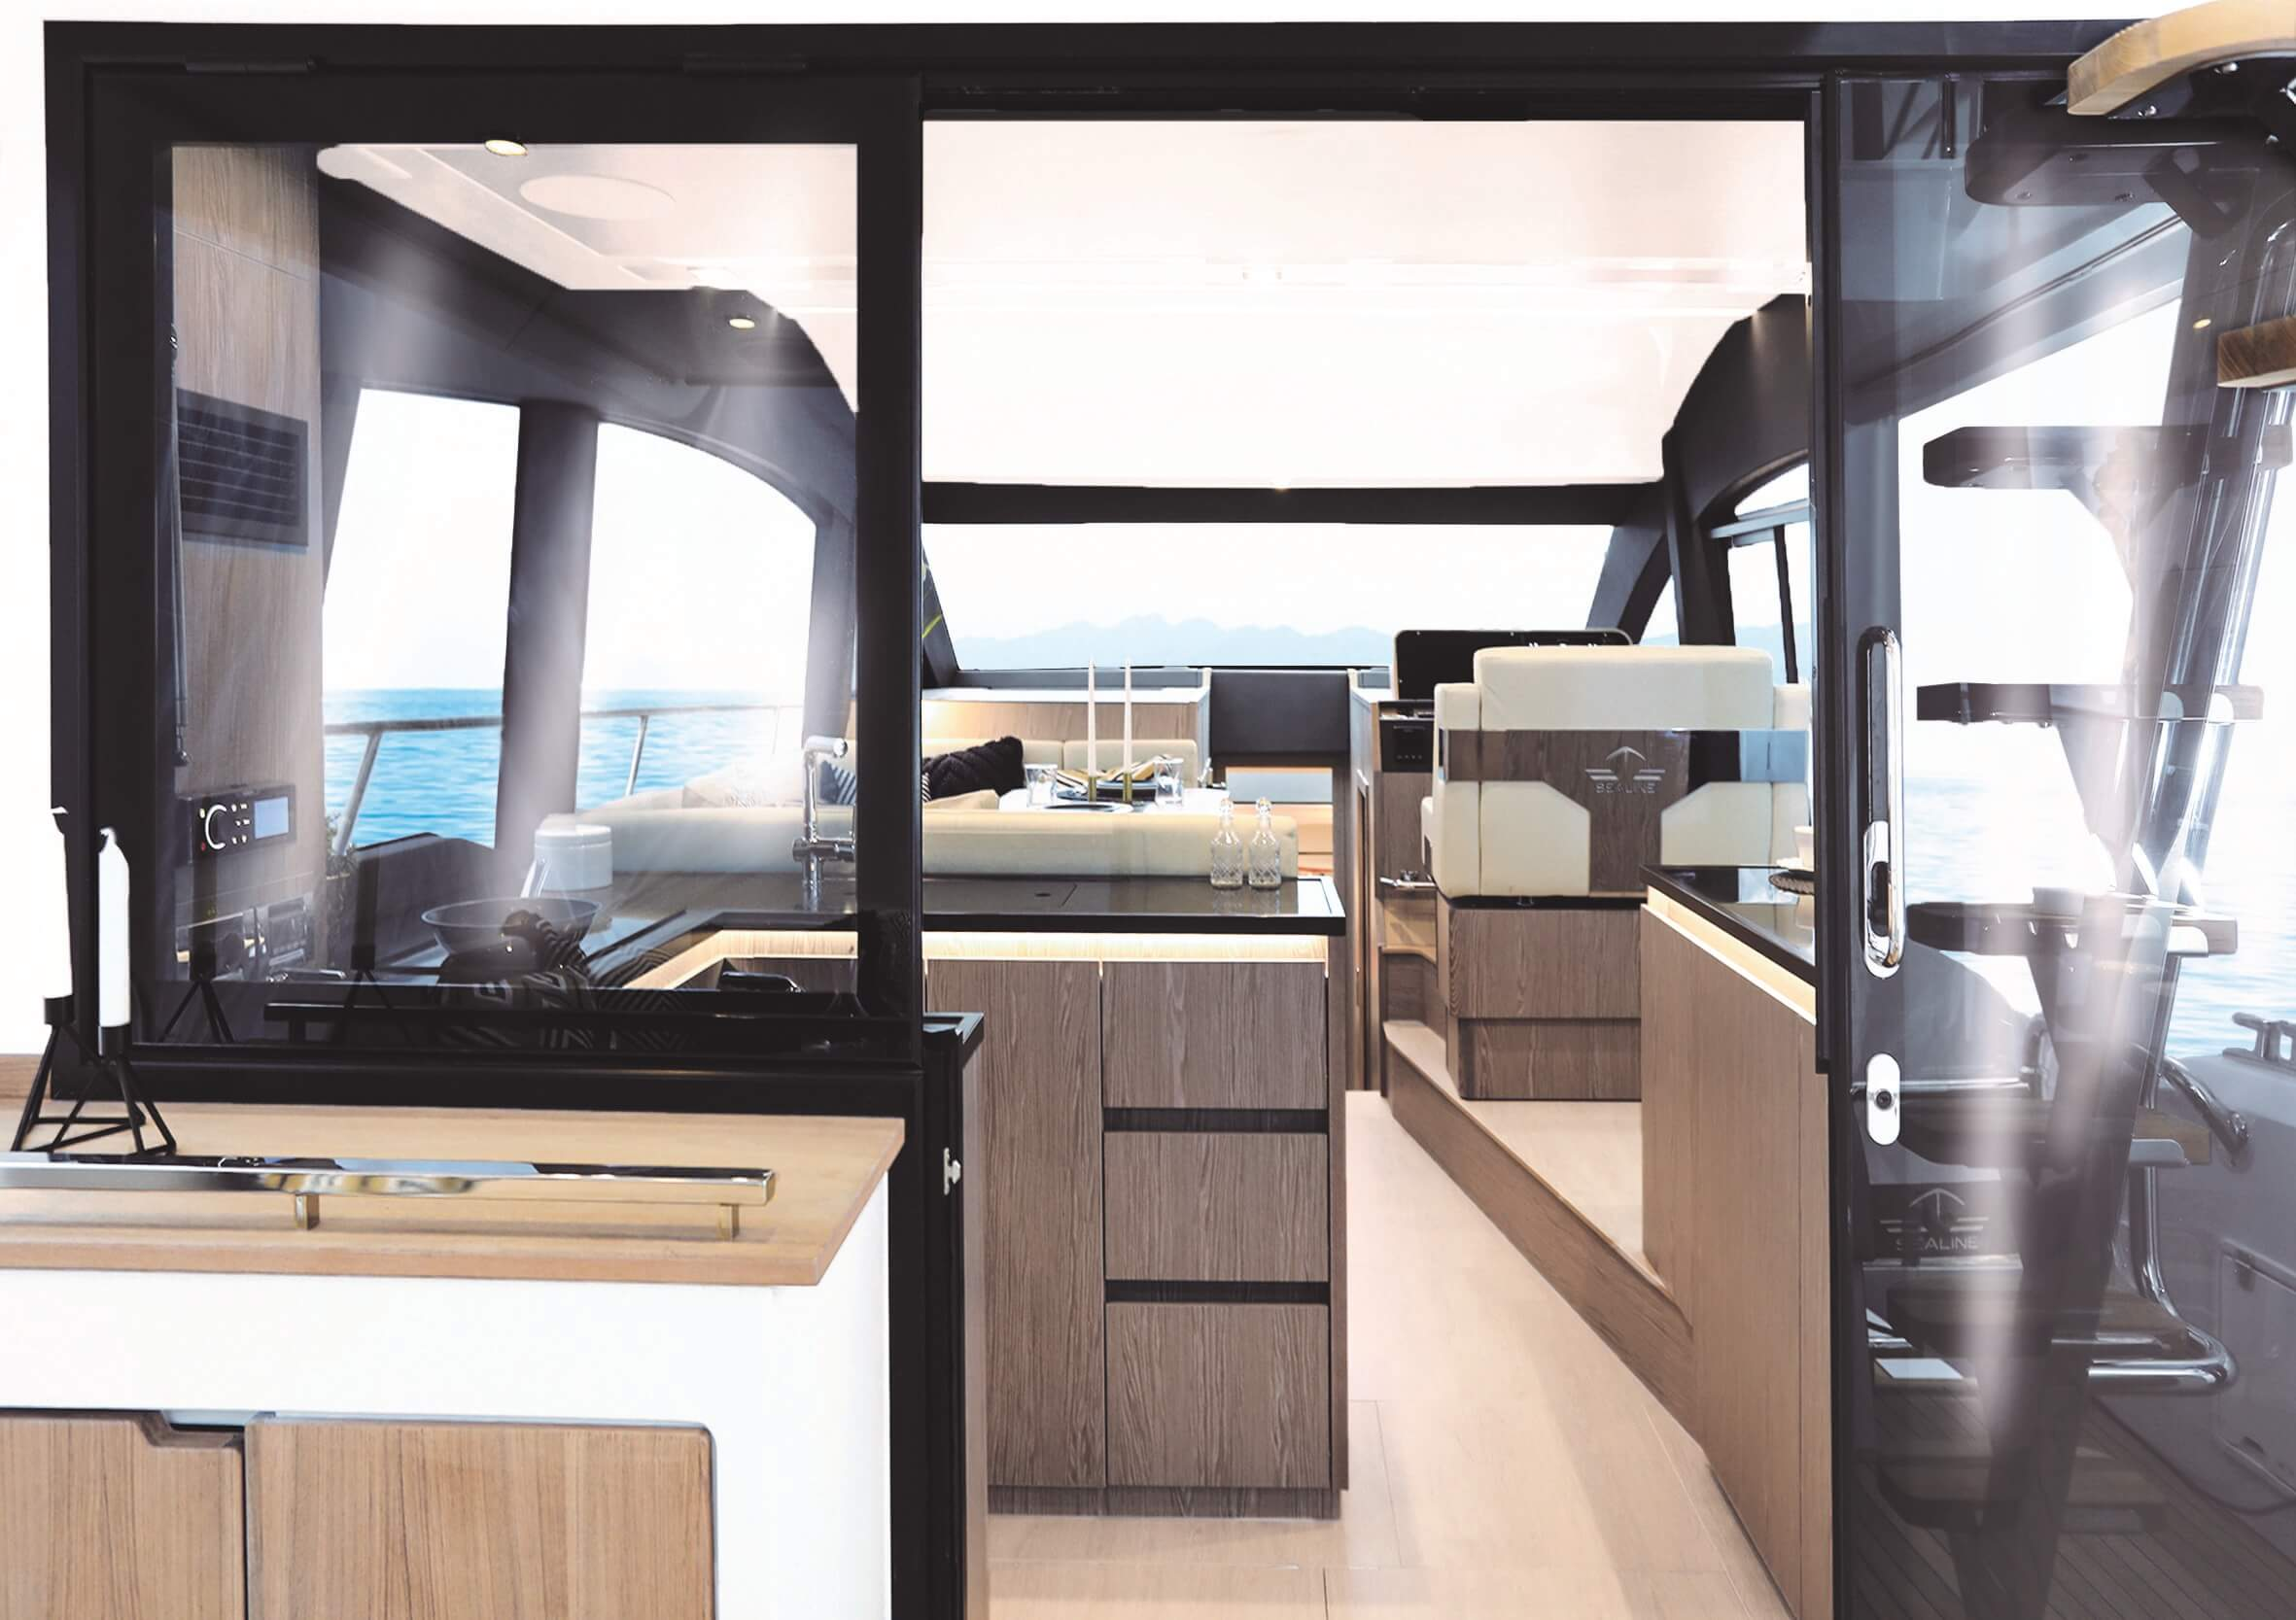 Sealine F430 | Sliding door between cockpit and galley and tilting window to enlarge galley into cockpit. | Sealine